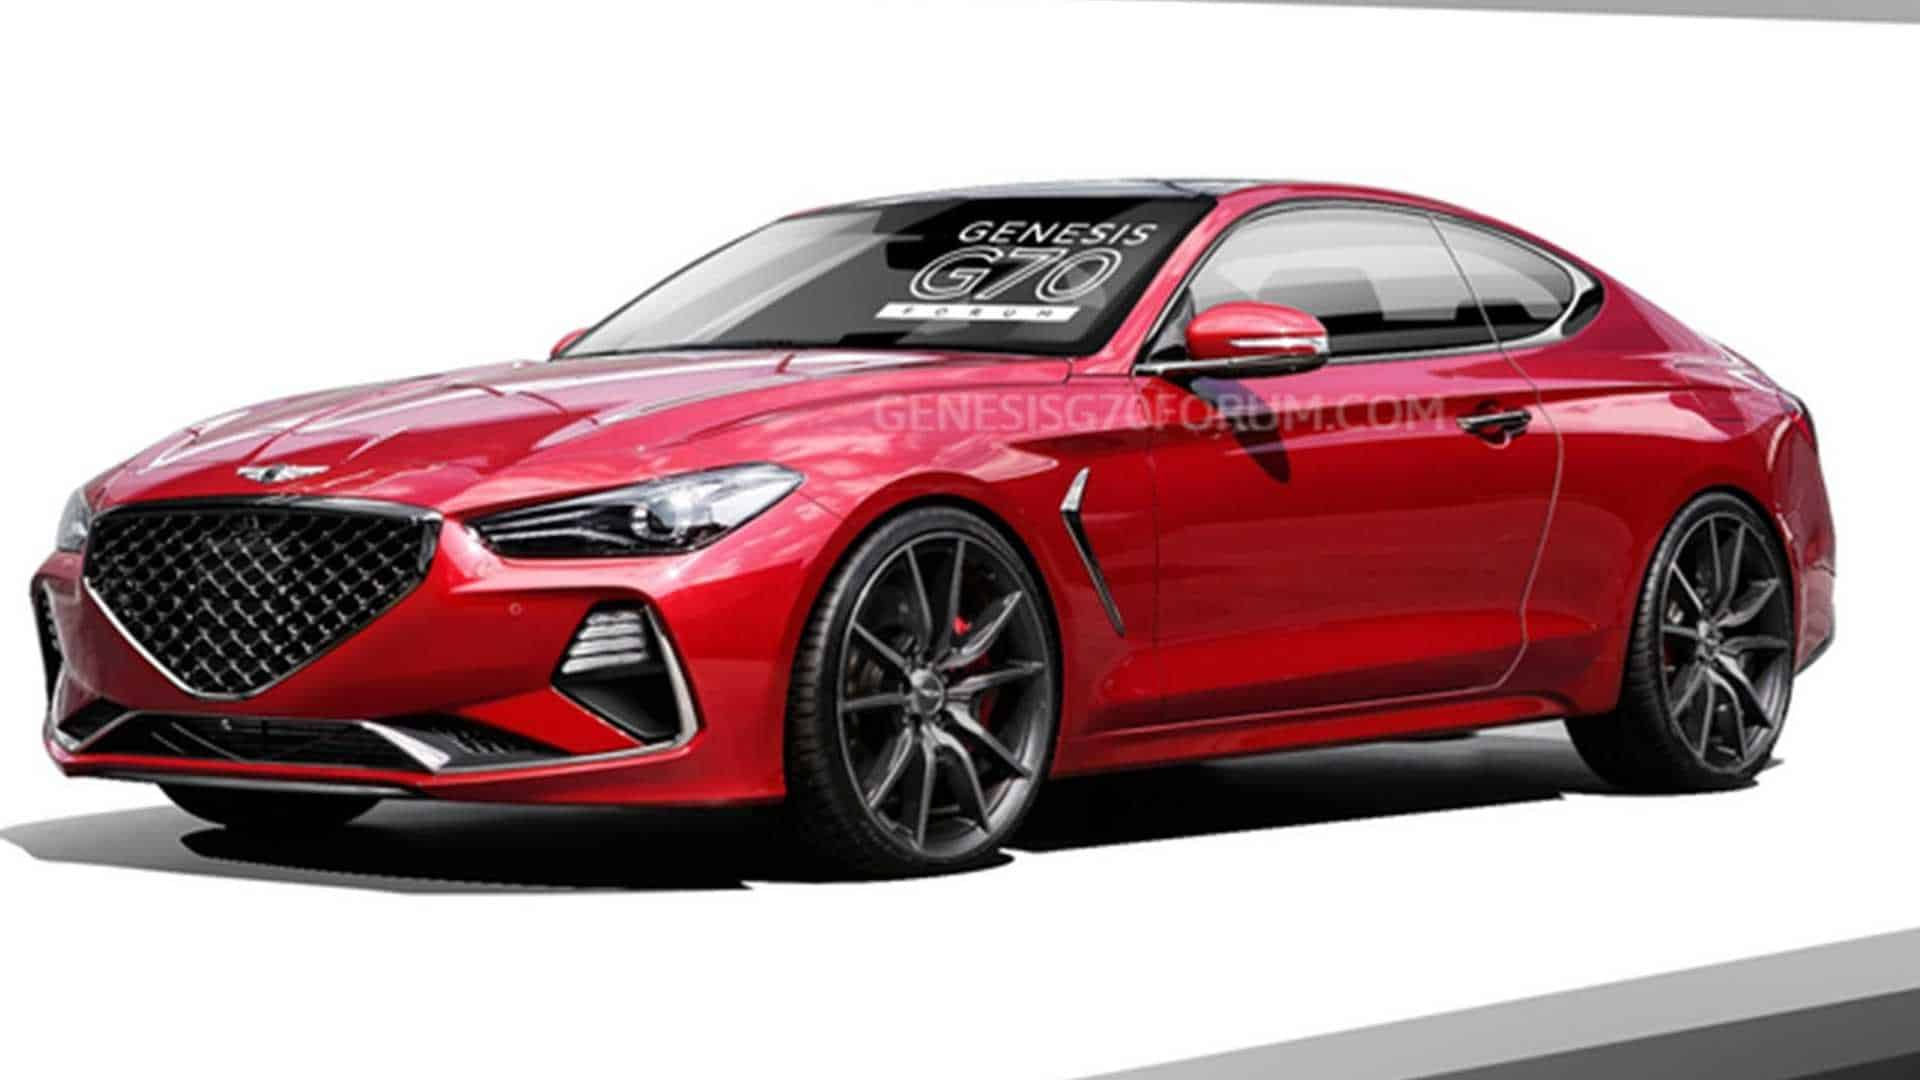 Genesis G70 Coupe Render